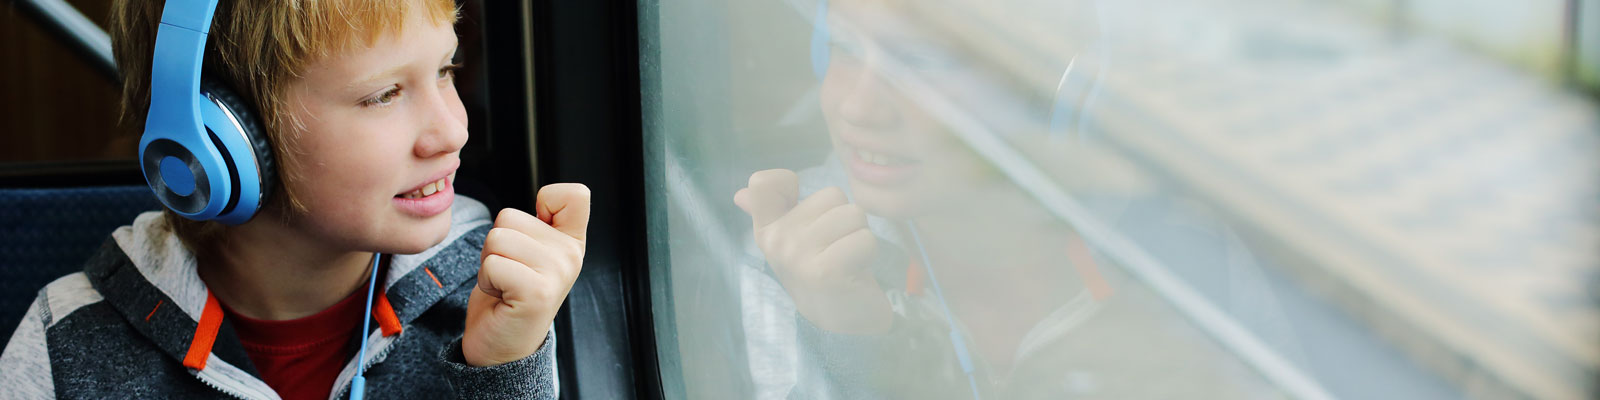 Autism - ASD - Autistic Child with headphones on train - Communicating Above Barriers